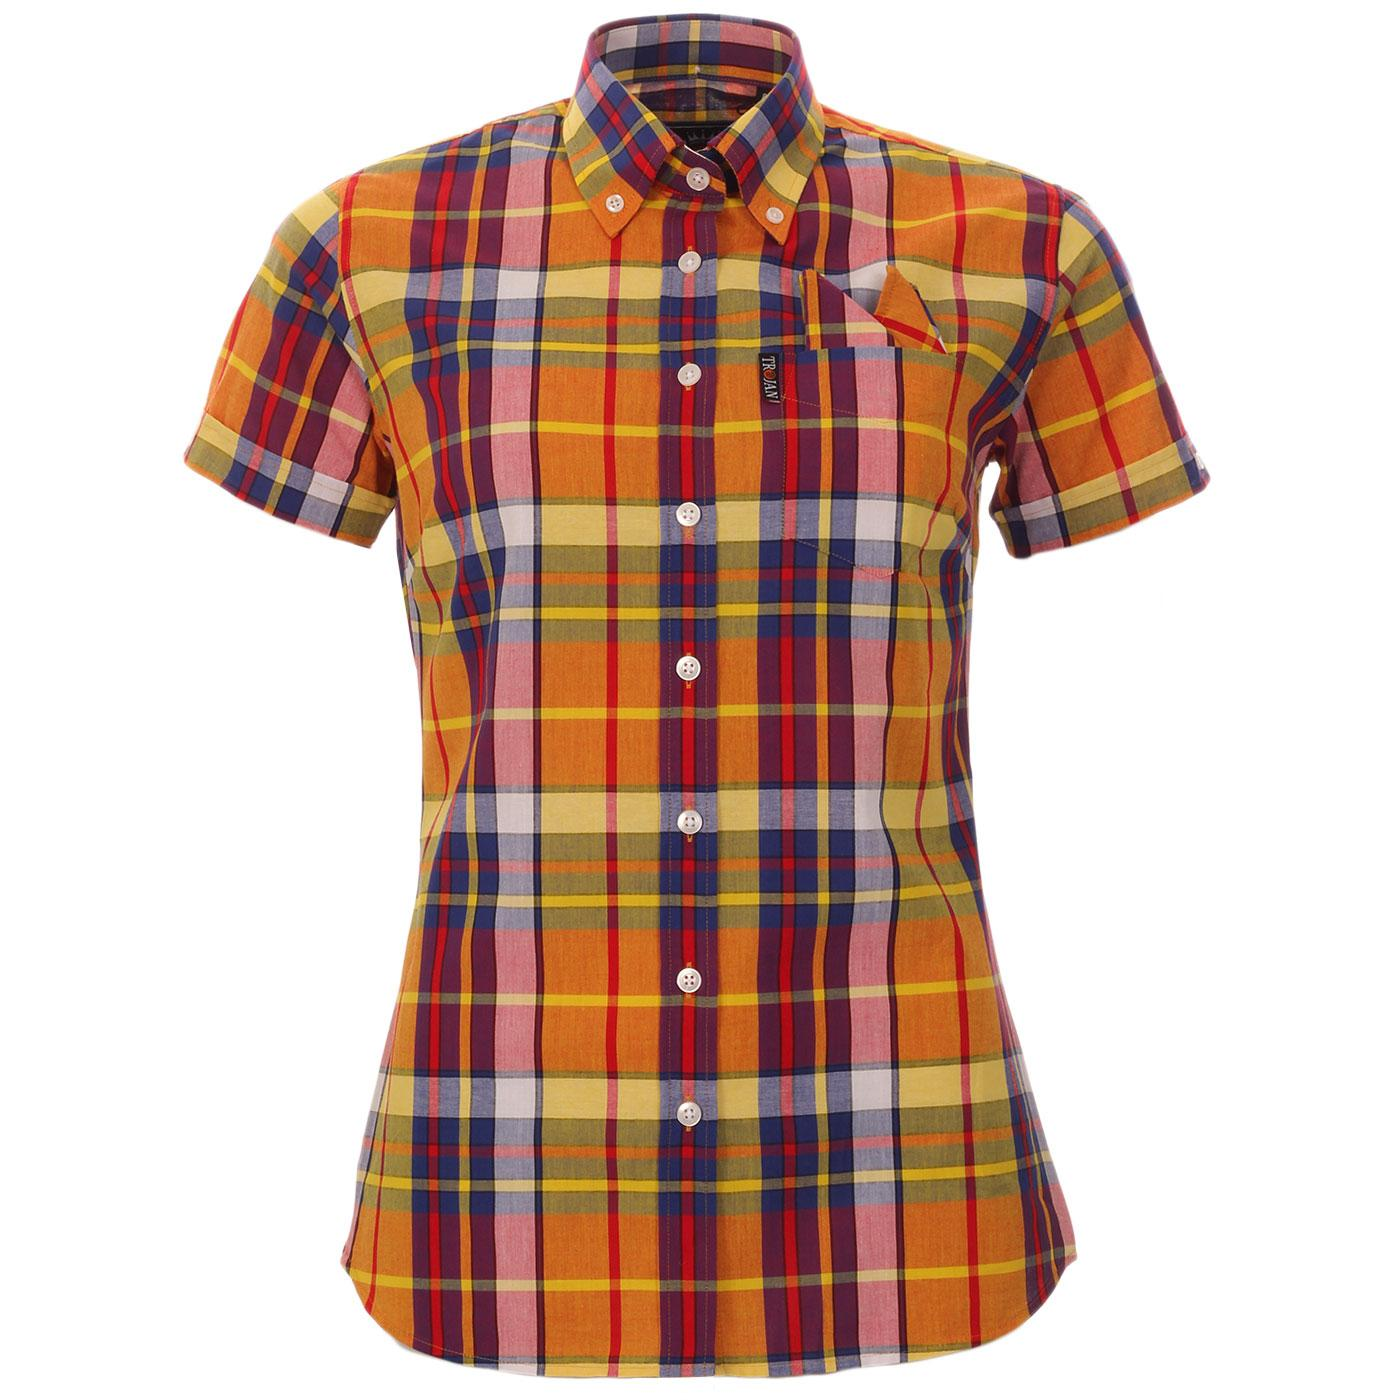 TROJAN RECORDS Women's Mod Plaid Check Shirt GOLD